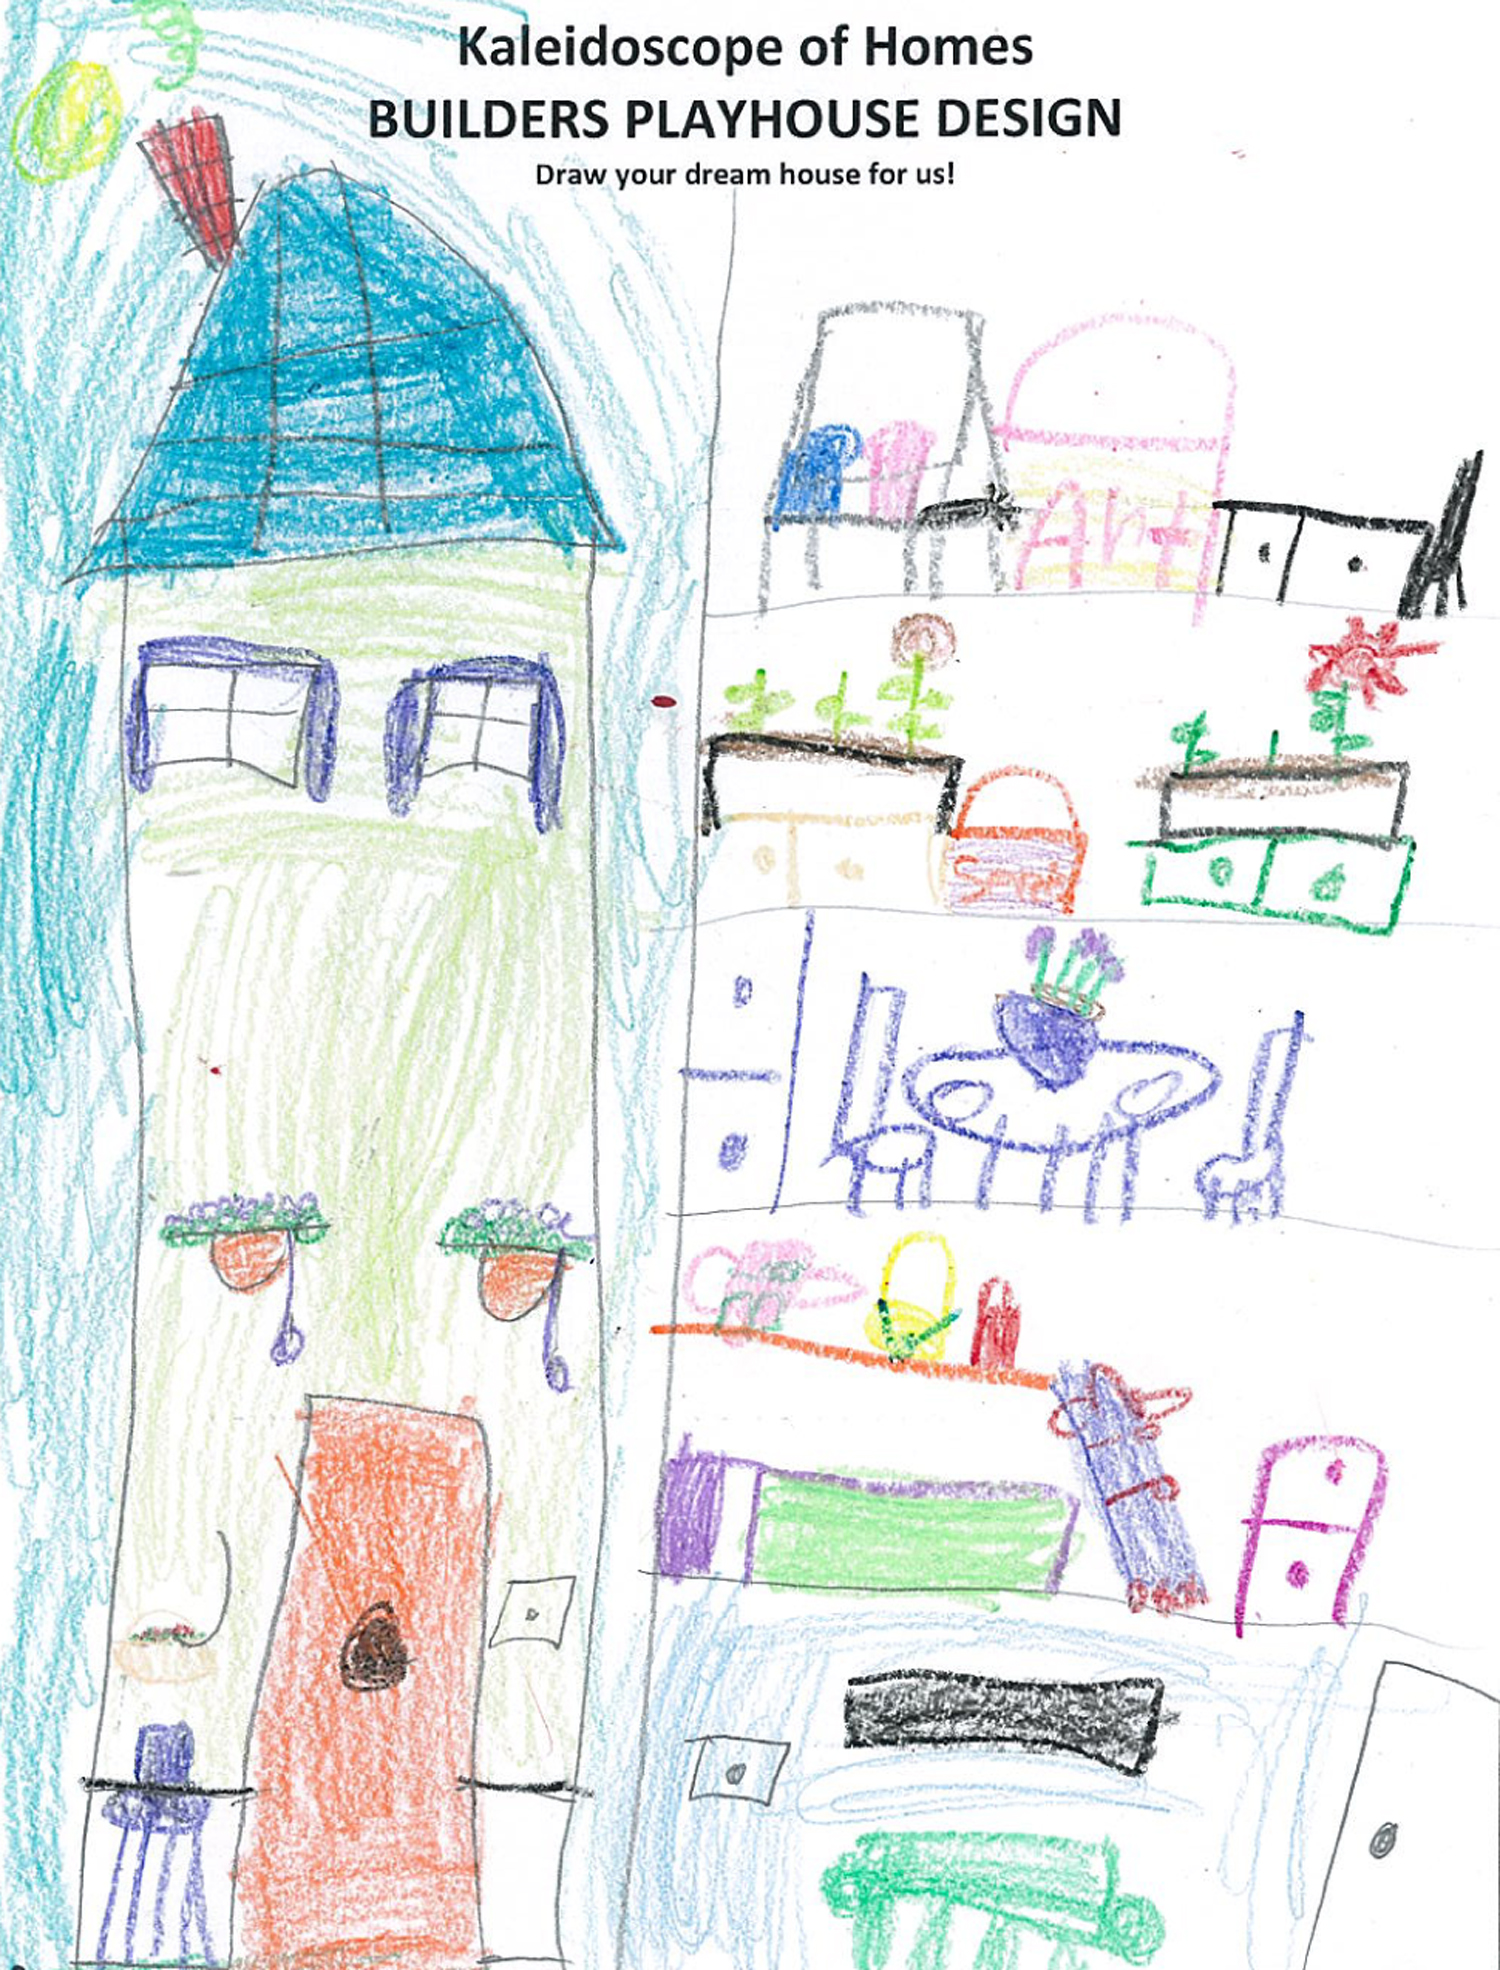 Texas Ranch Homes Scottish Rite Patient S Dream House Drawing Comes To Life